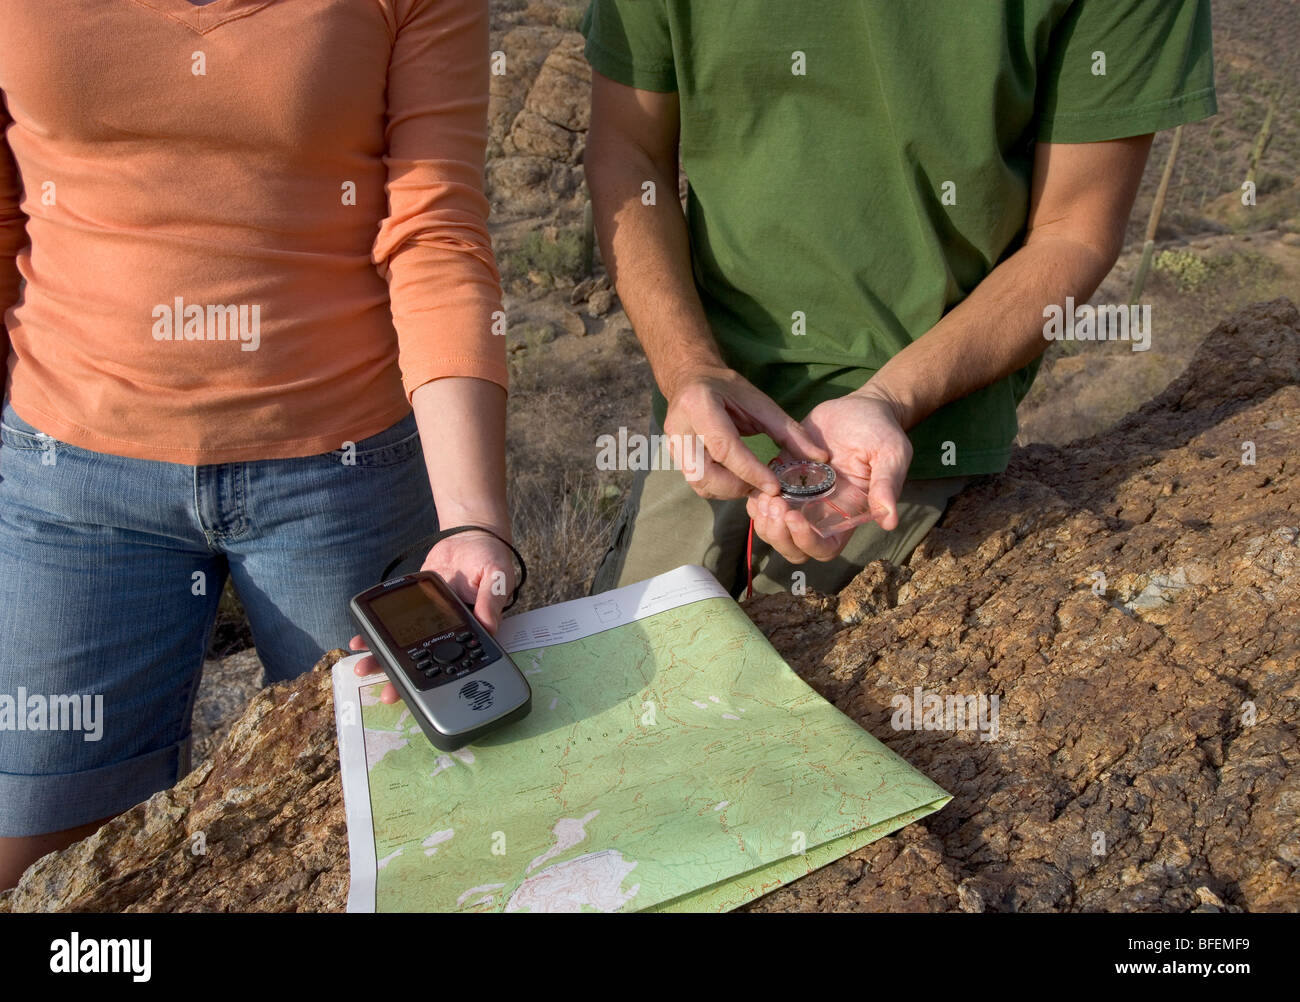 Couple using GPS, compass, and topo map while hiking. - Stock Image